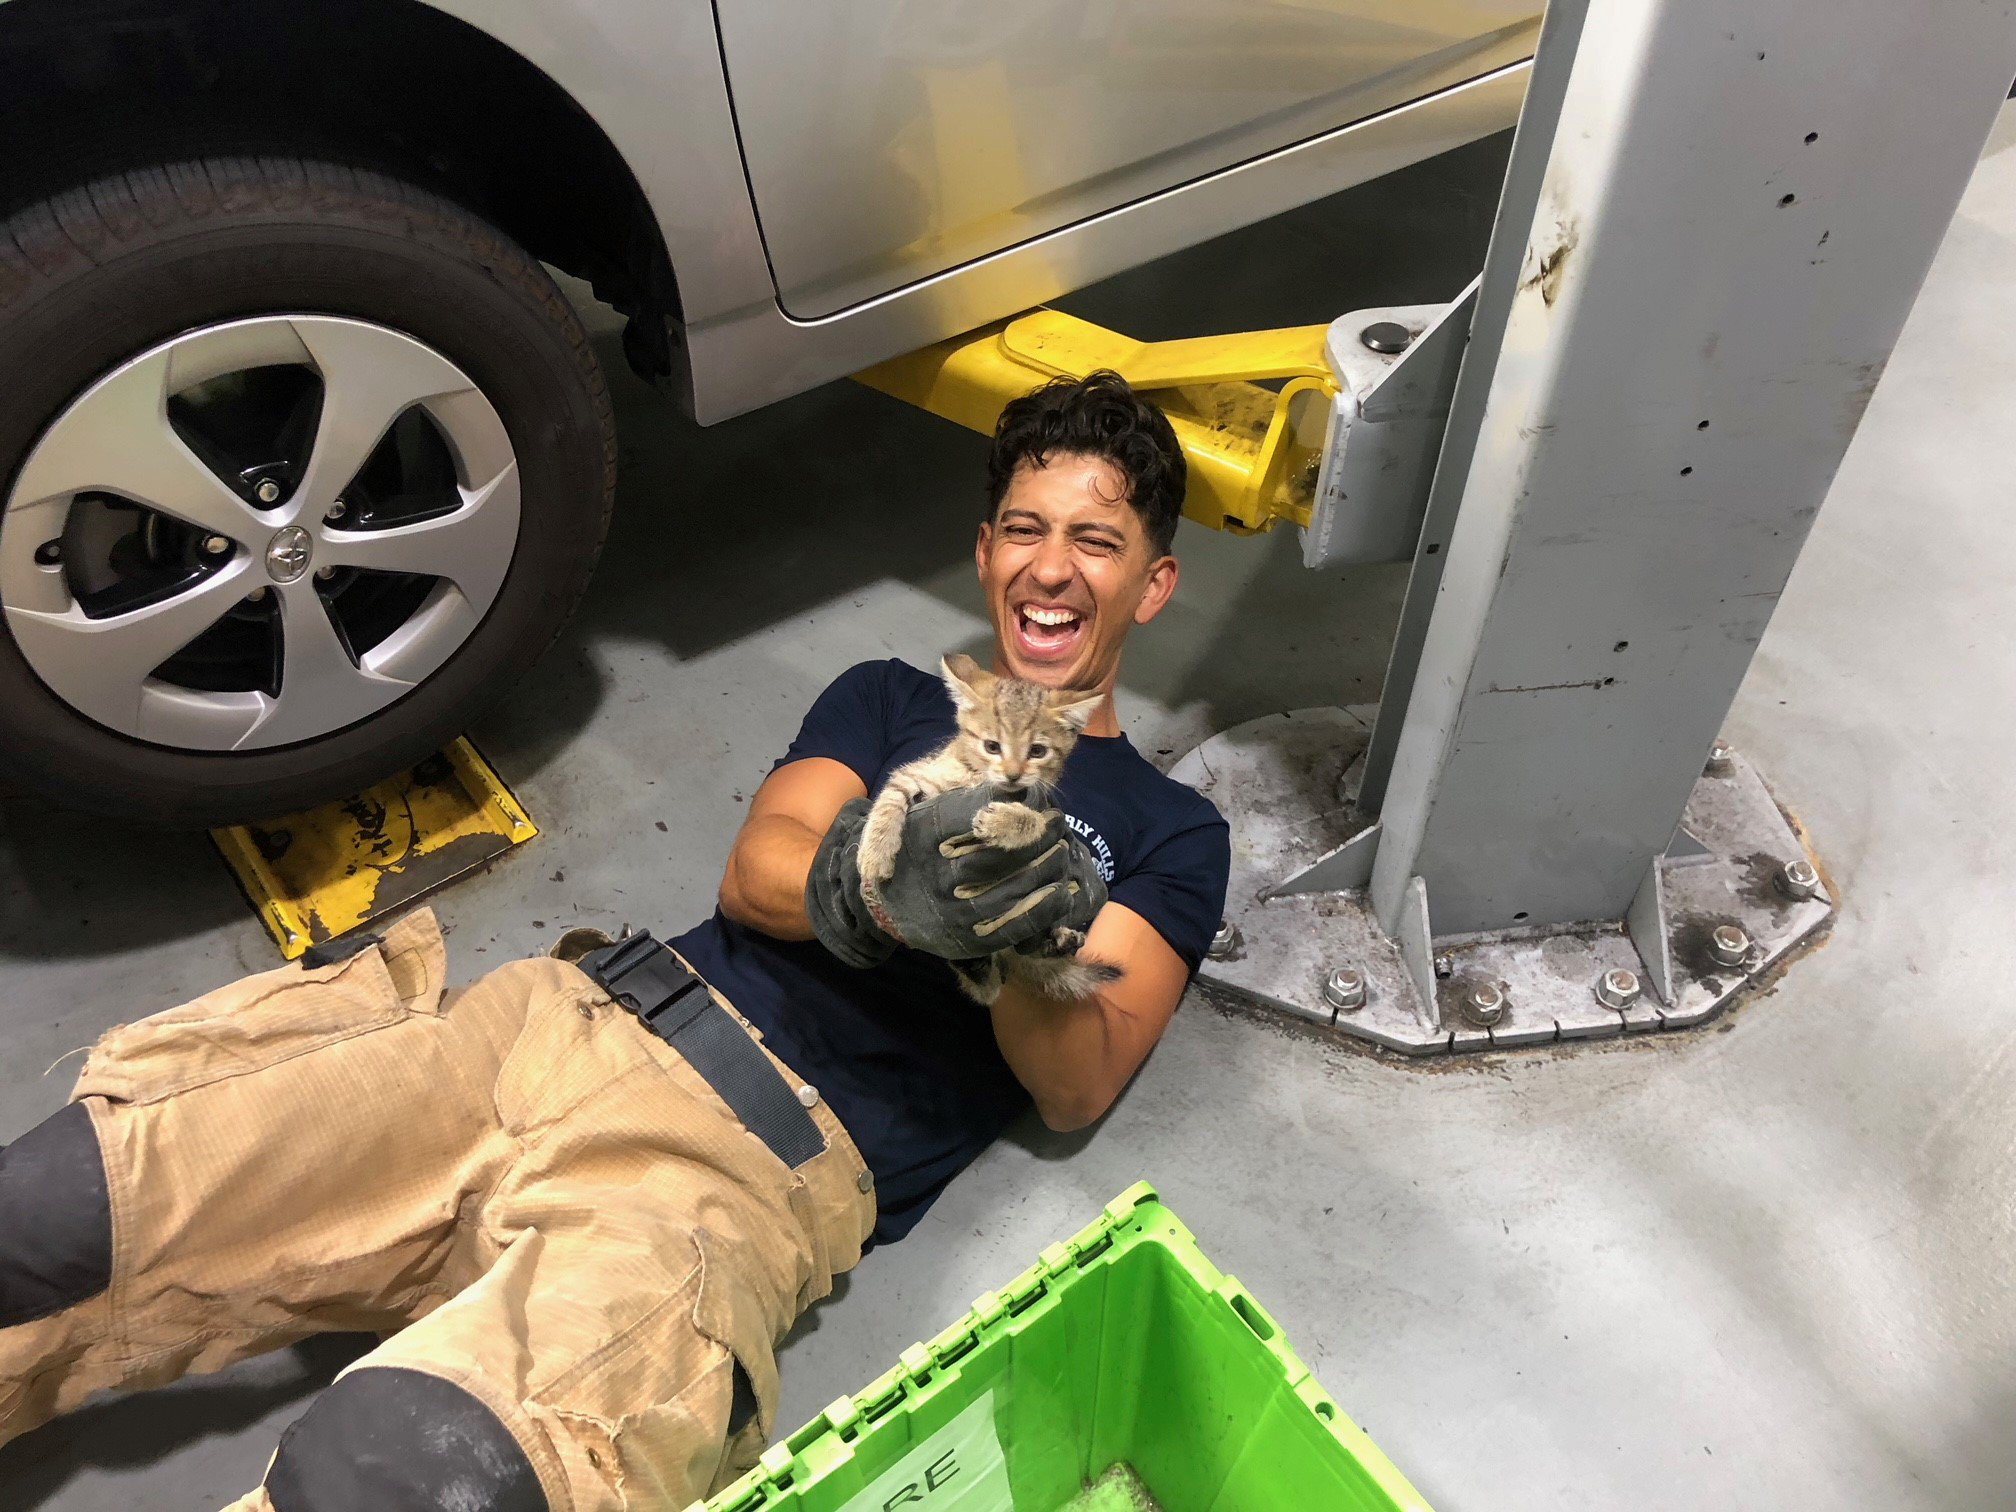 Firefighters Save Kitten That Survived 385-Mile Road Trip Trapped in a Car Engine